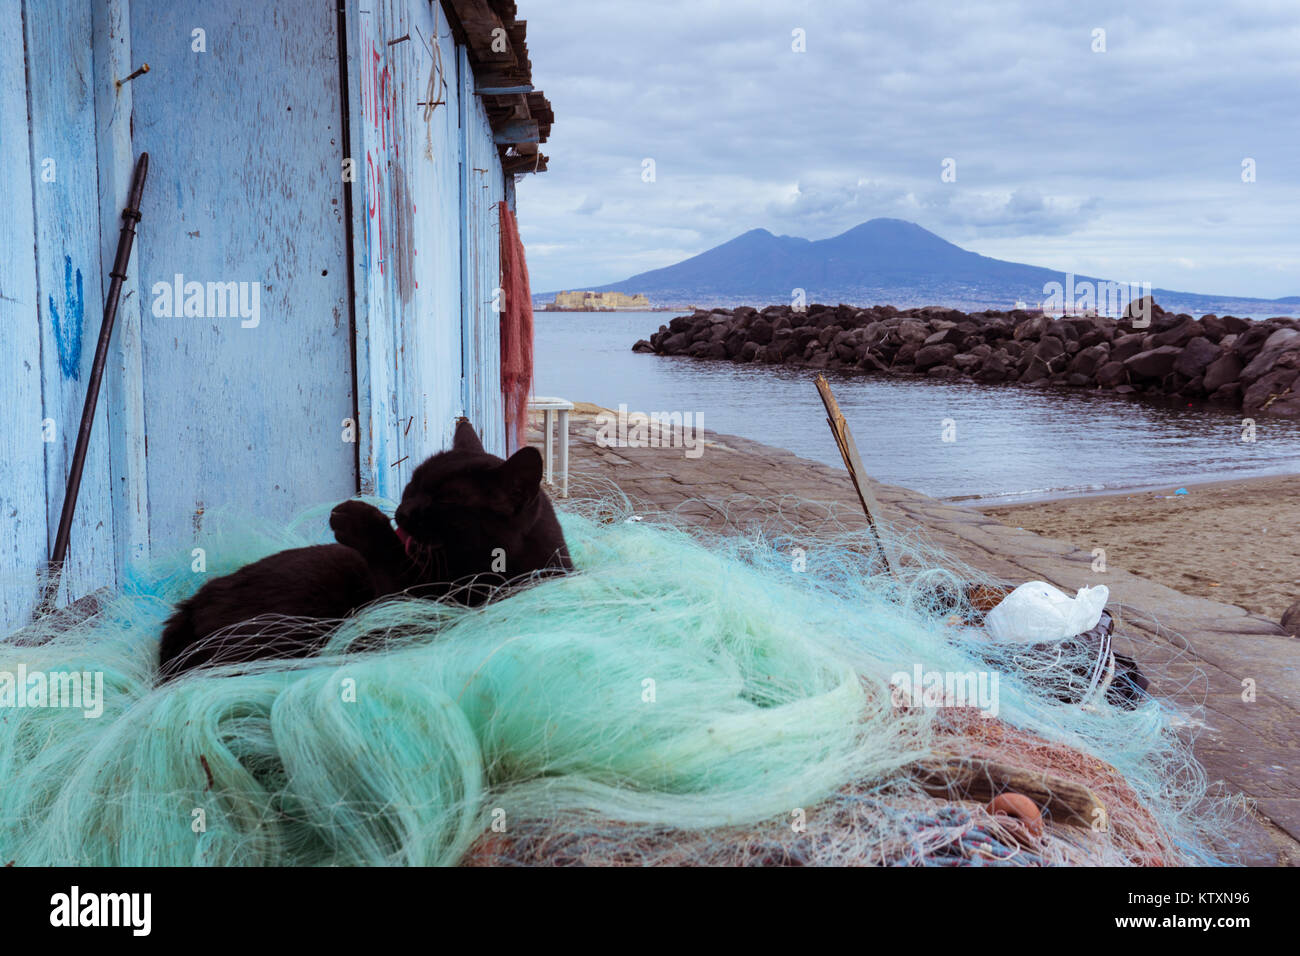 a black cat sleeping and washing him self under the shadow of the naple's volcano, the Vesuvio Stock Photo